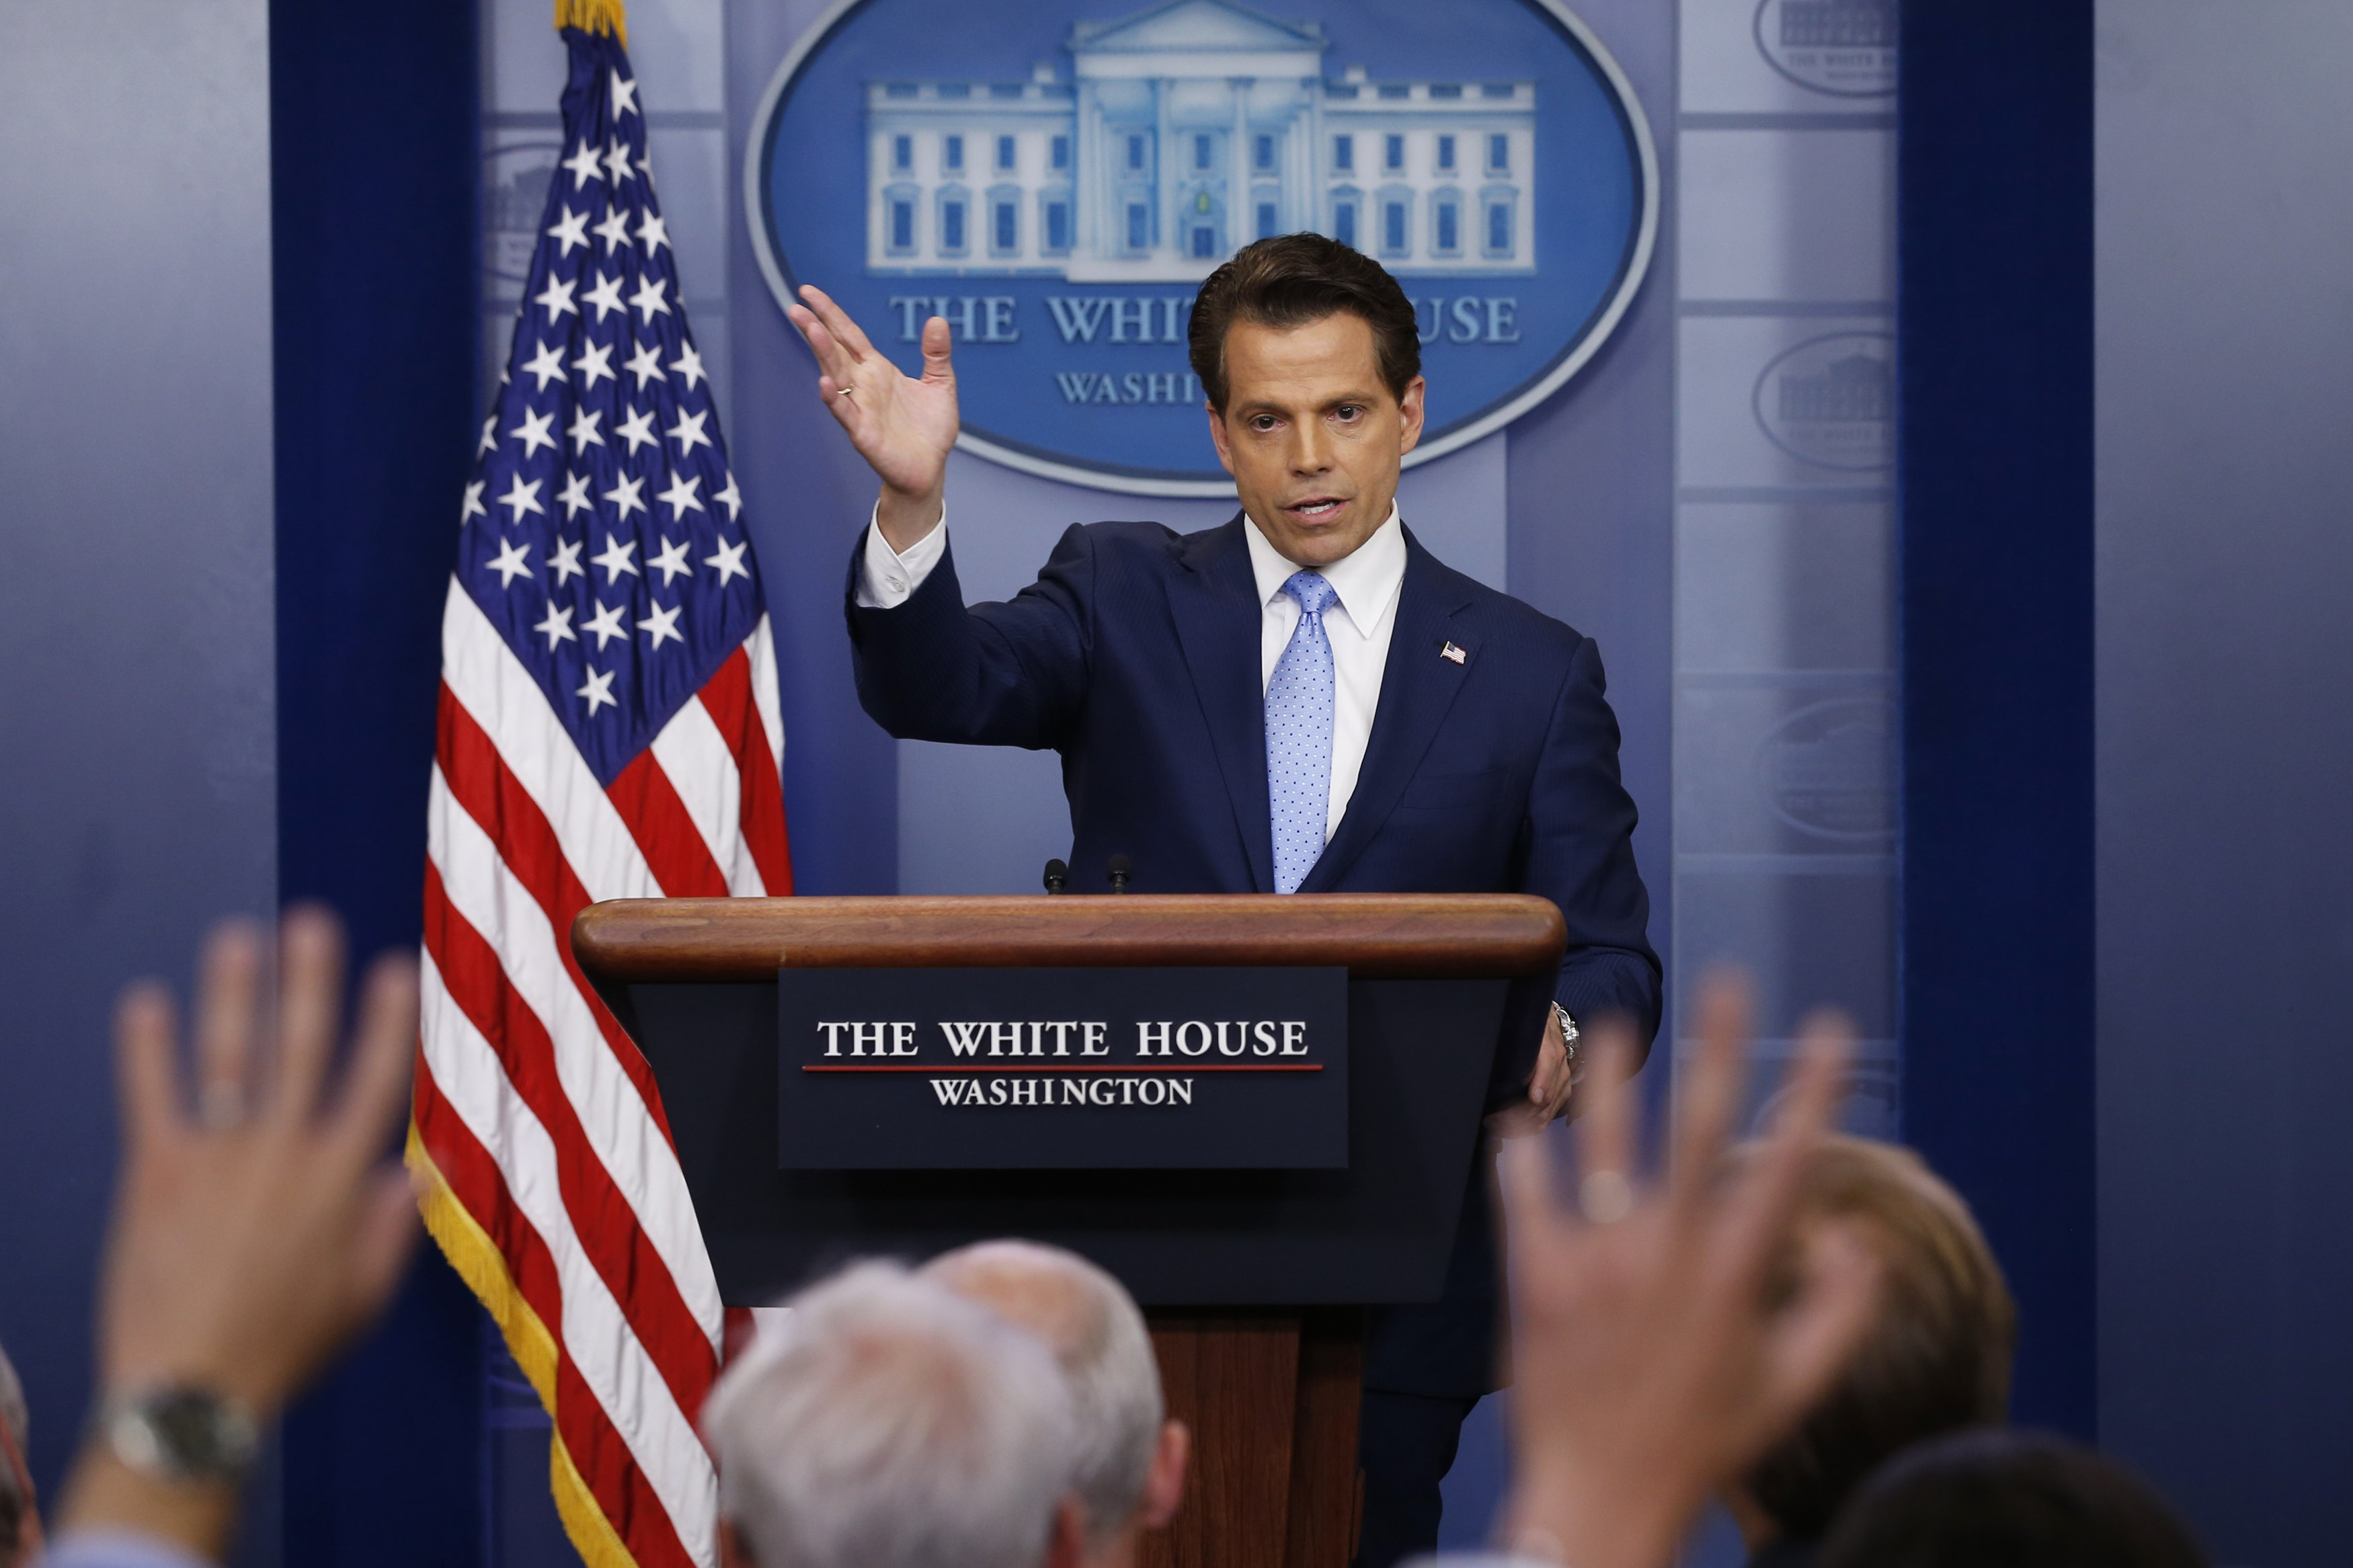 New White House Communications Director Anthony Scaramucci takes questions at the daily briefing at the White House in Washington, U.S., July 21, 2017. (REUTERS/Jonathan Ernst)